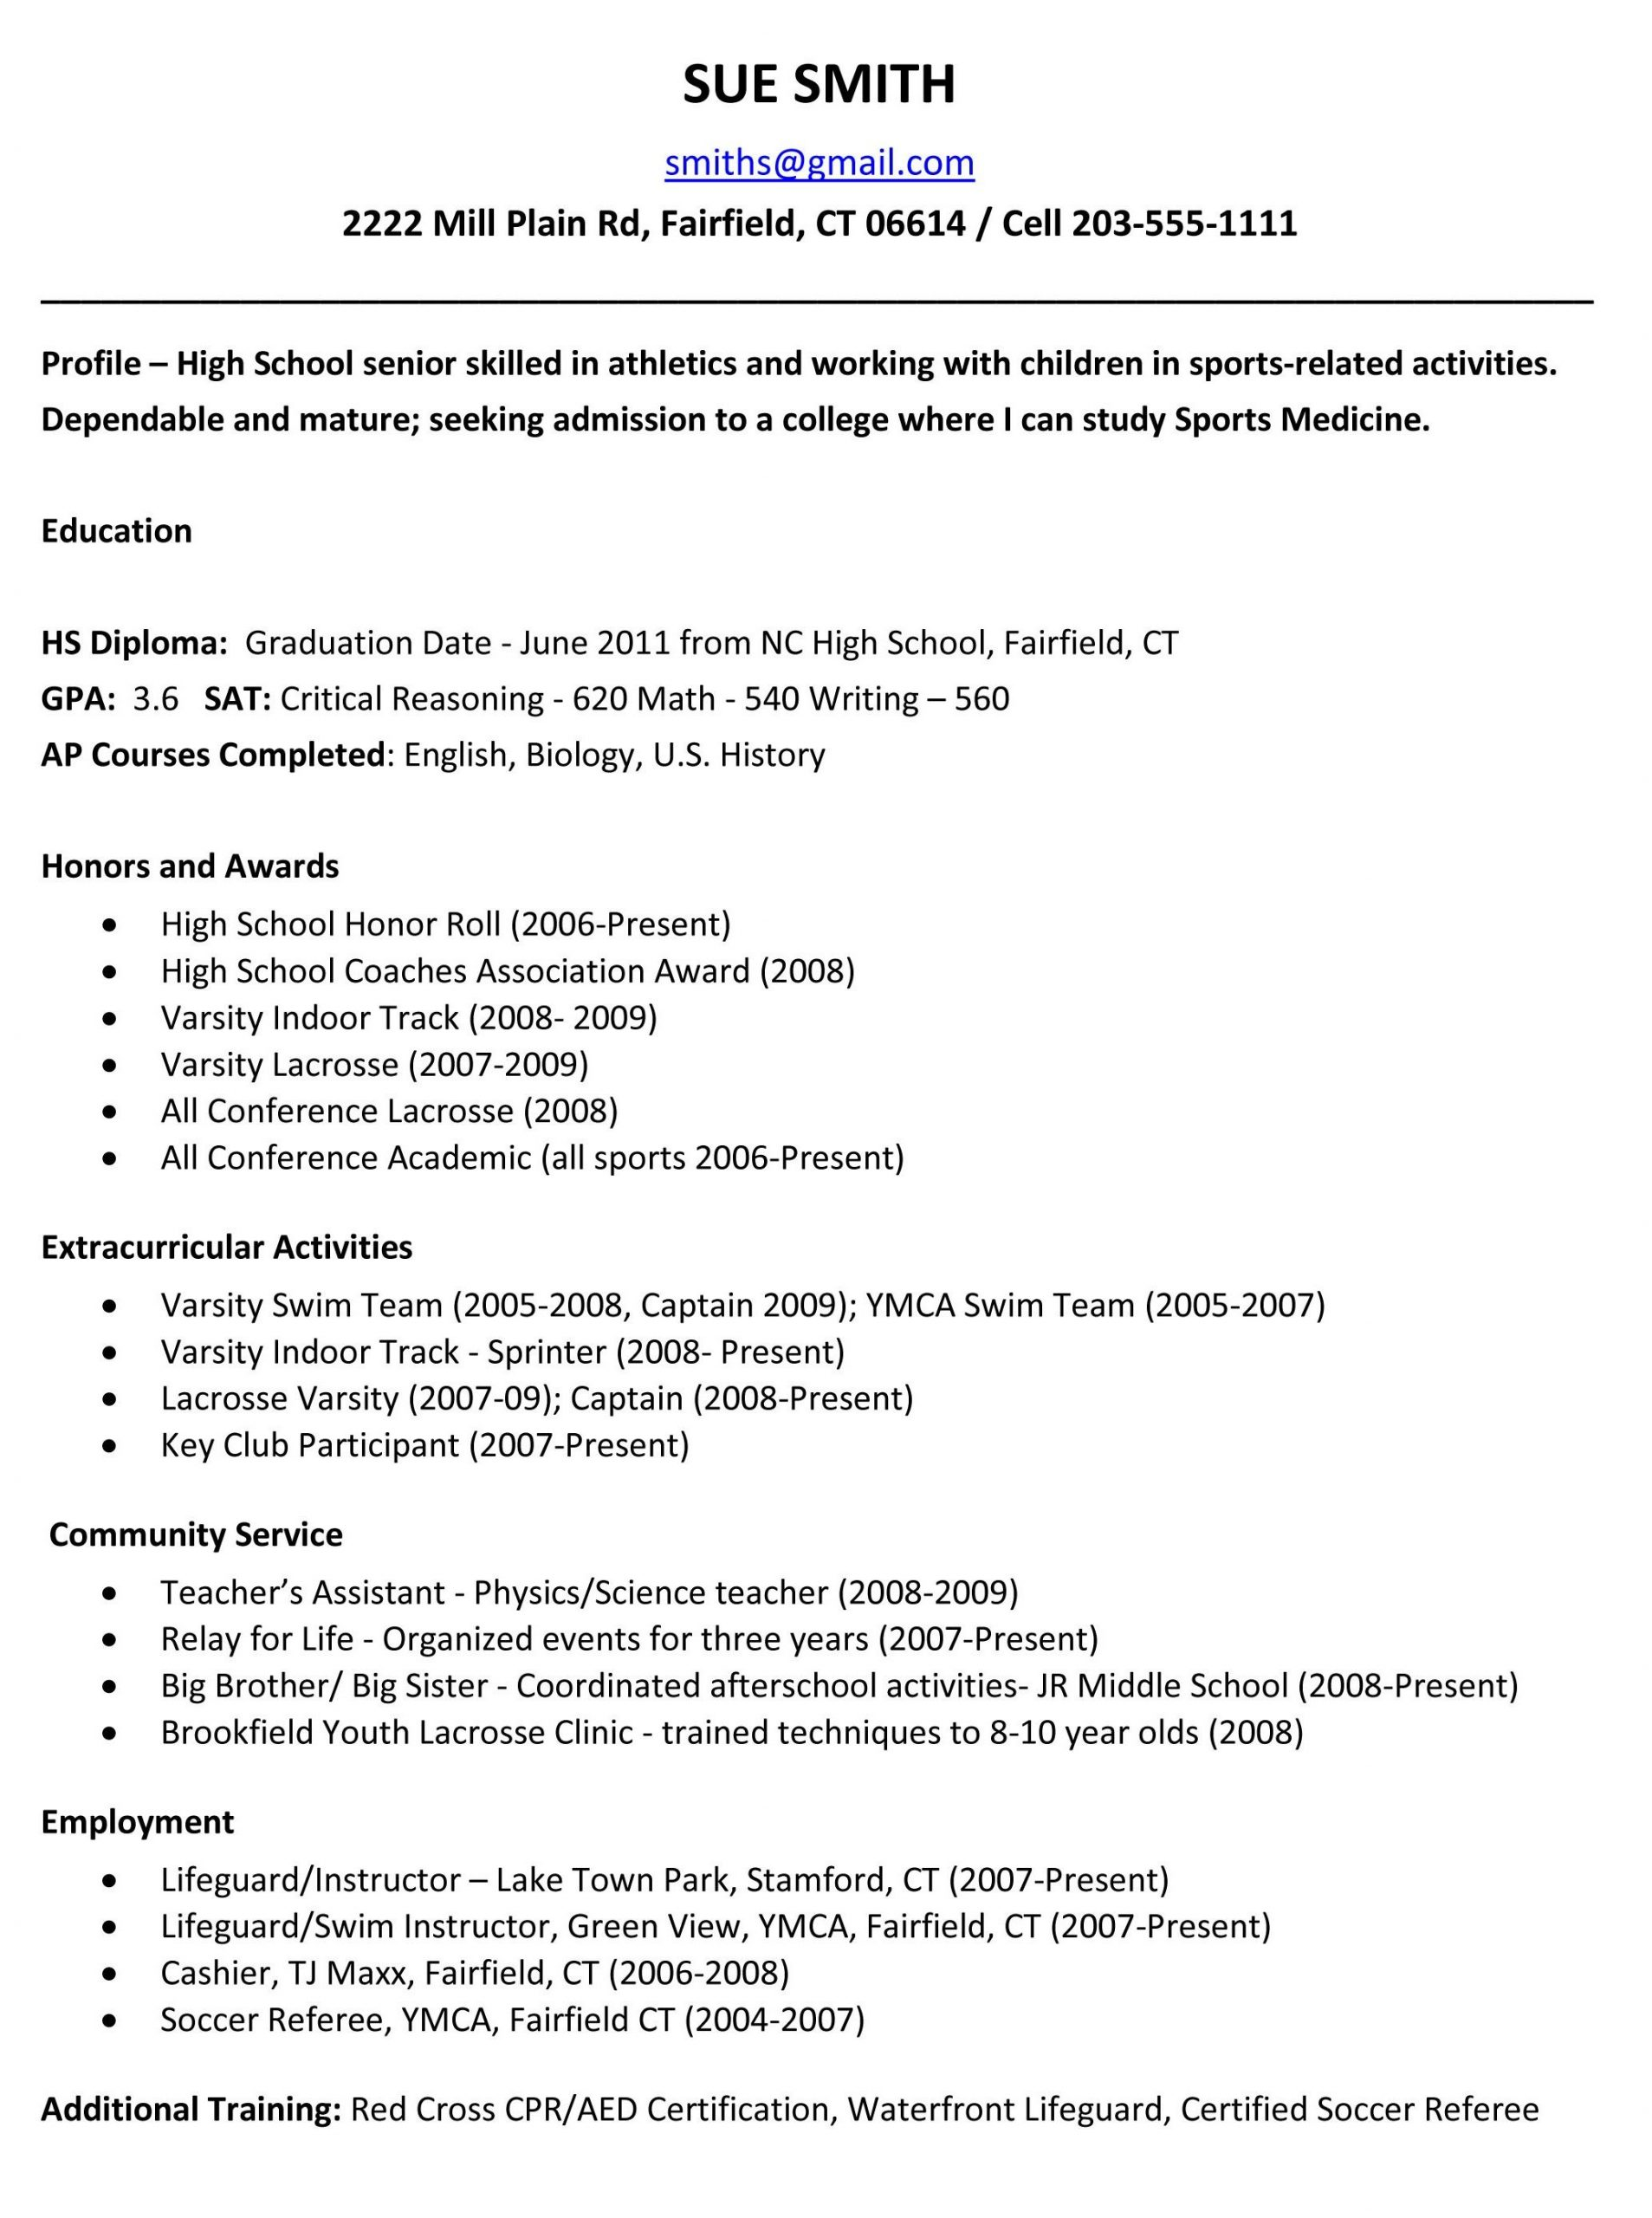 example resume for high school students for college applications school resume templateregularmidwesterners